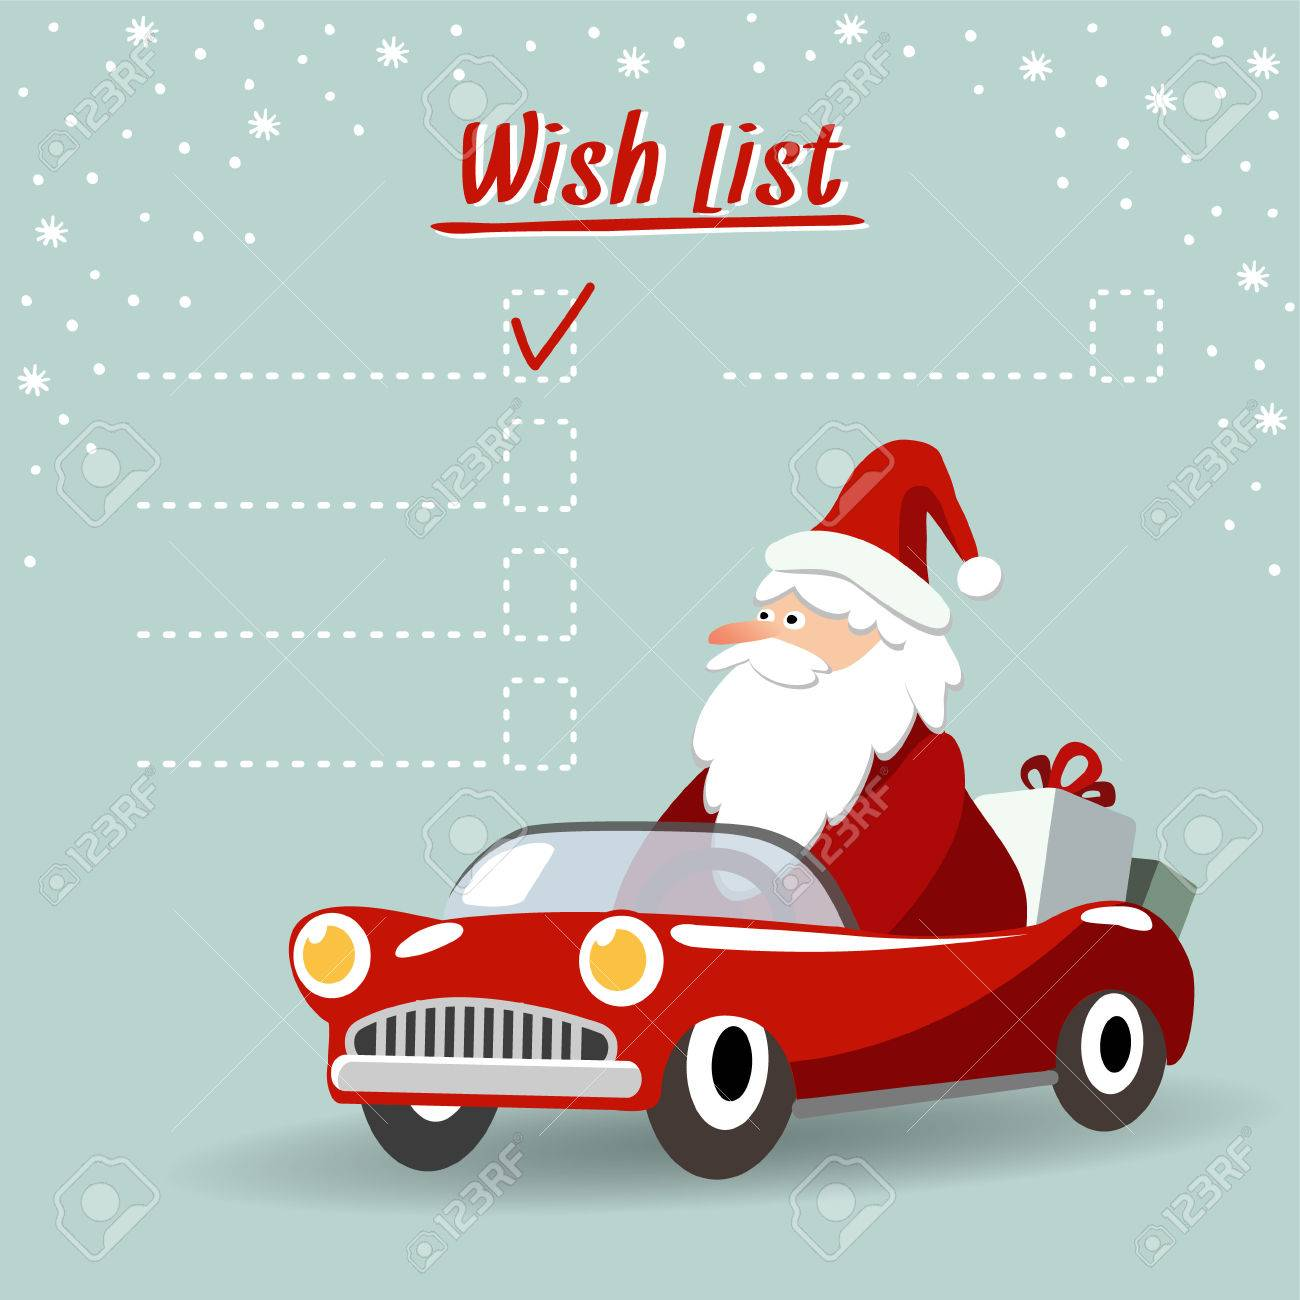 Cute christmas greeting card, wish list with Santa Claus, retro sports car and gifts, vector illustration background - 47108812